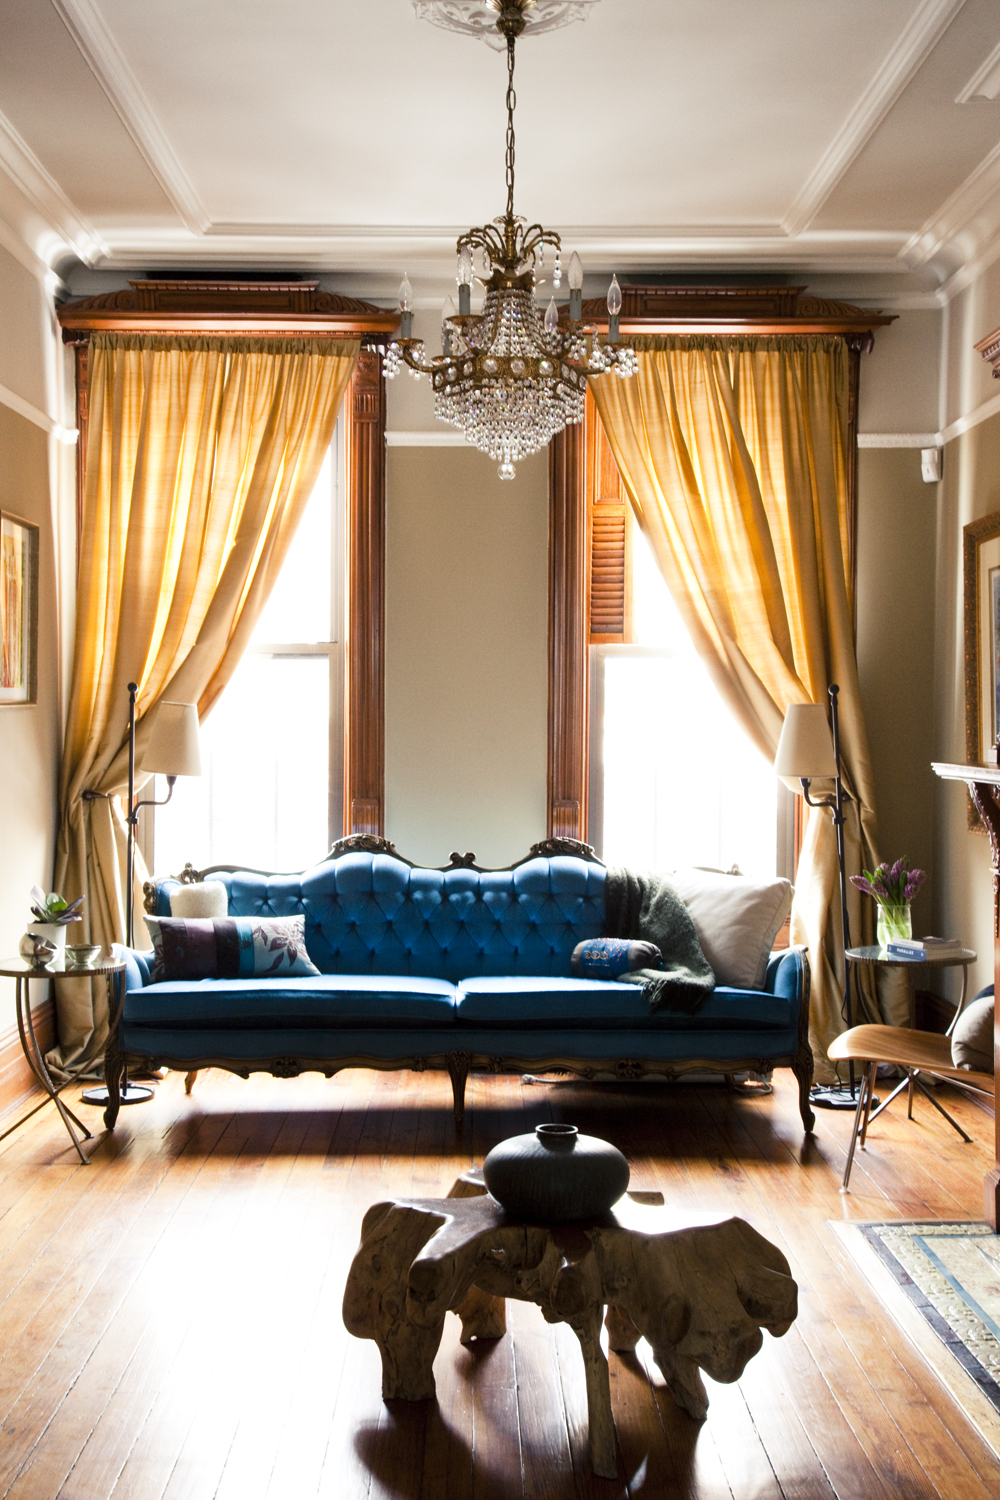 25 Eclectic Living Room Design Ideas - Decoration Love on Picture Room Decor  id=97135